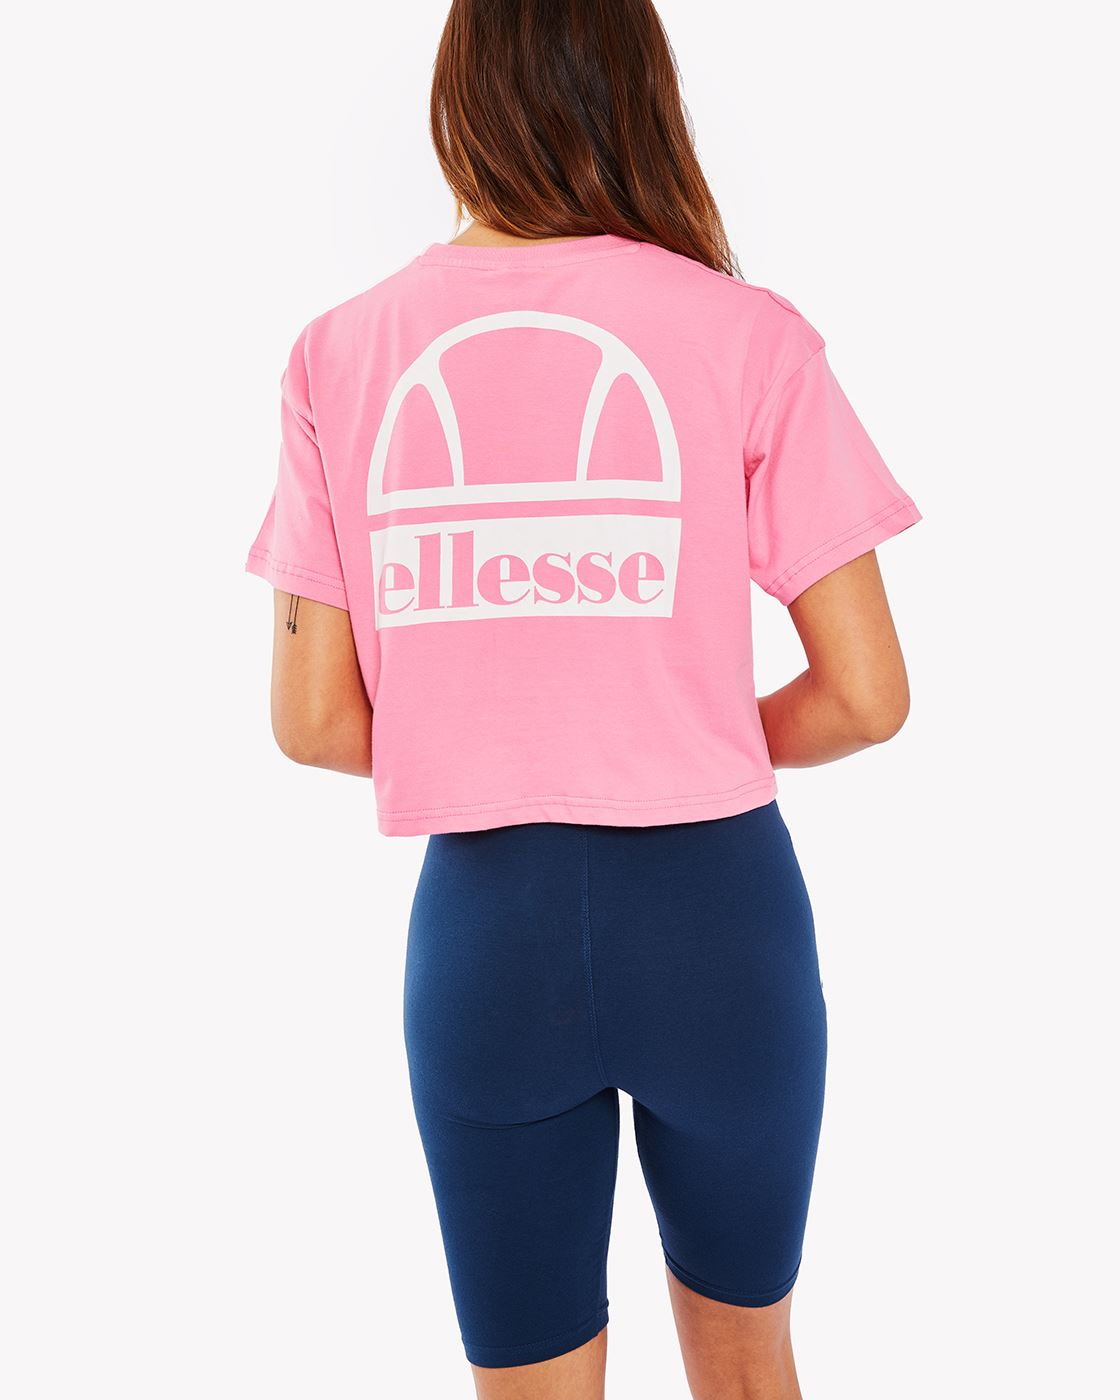 Ellesse-End-of-Line-Clearance-Sale-Bargain-Womens-Tops-T-Shirts-Free-UK-Ship thumbnail 38